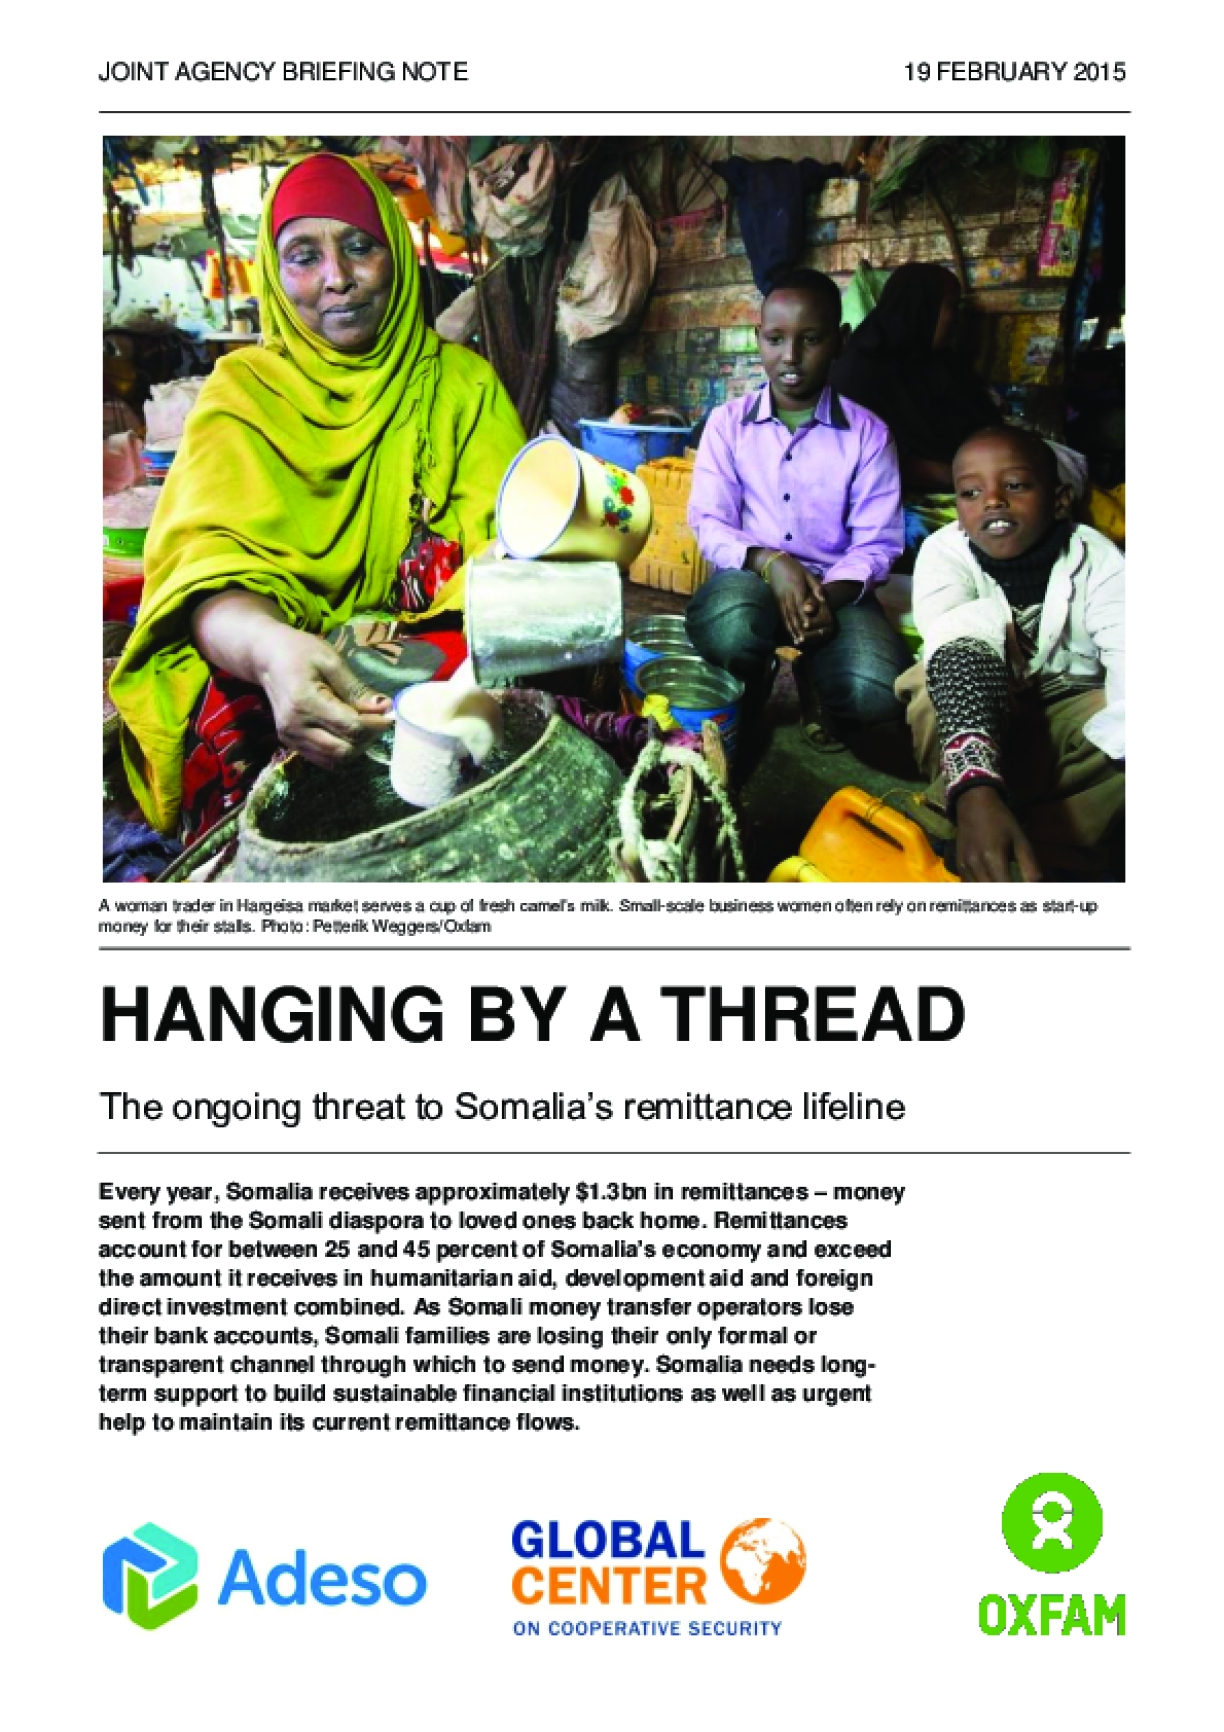 Hanging by a Thread: The Ongoing Threat to Somalia's Remittance Lifeline